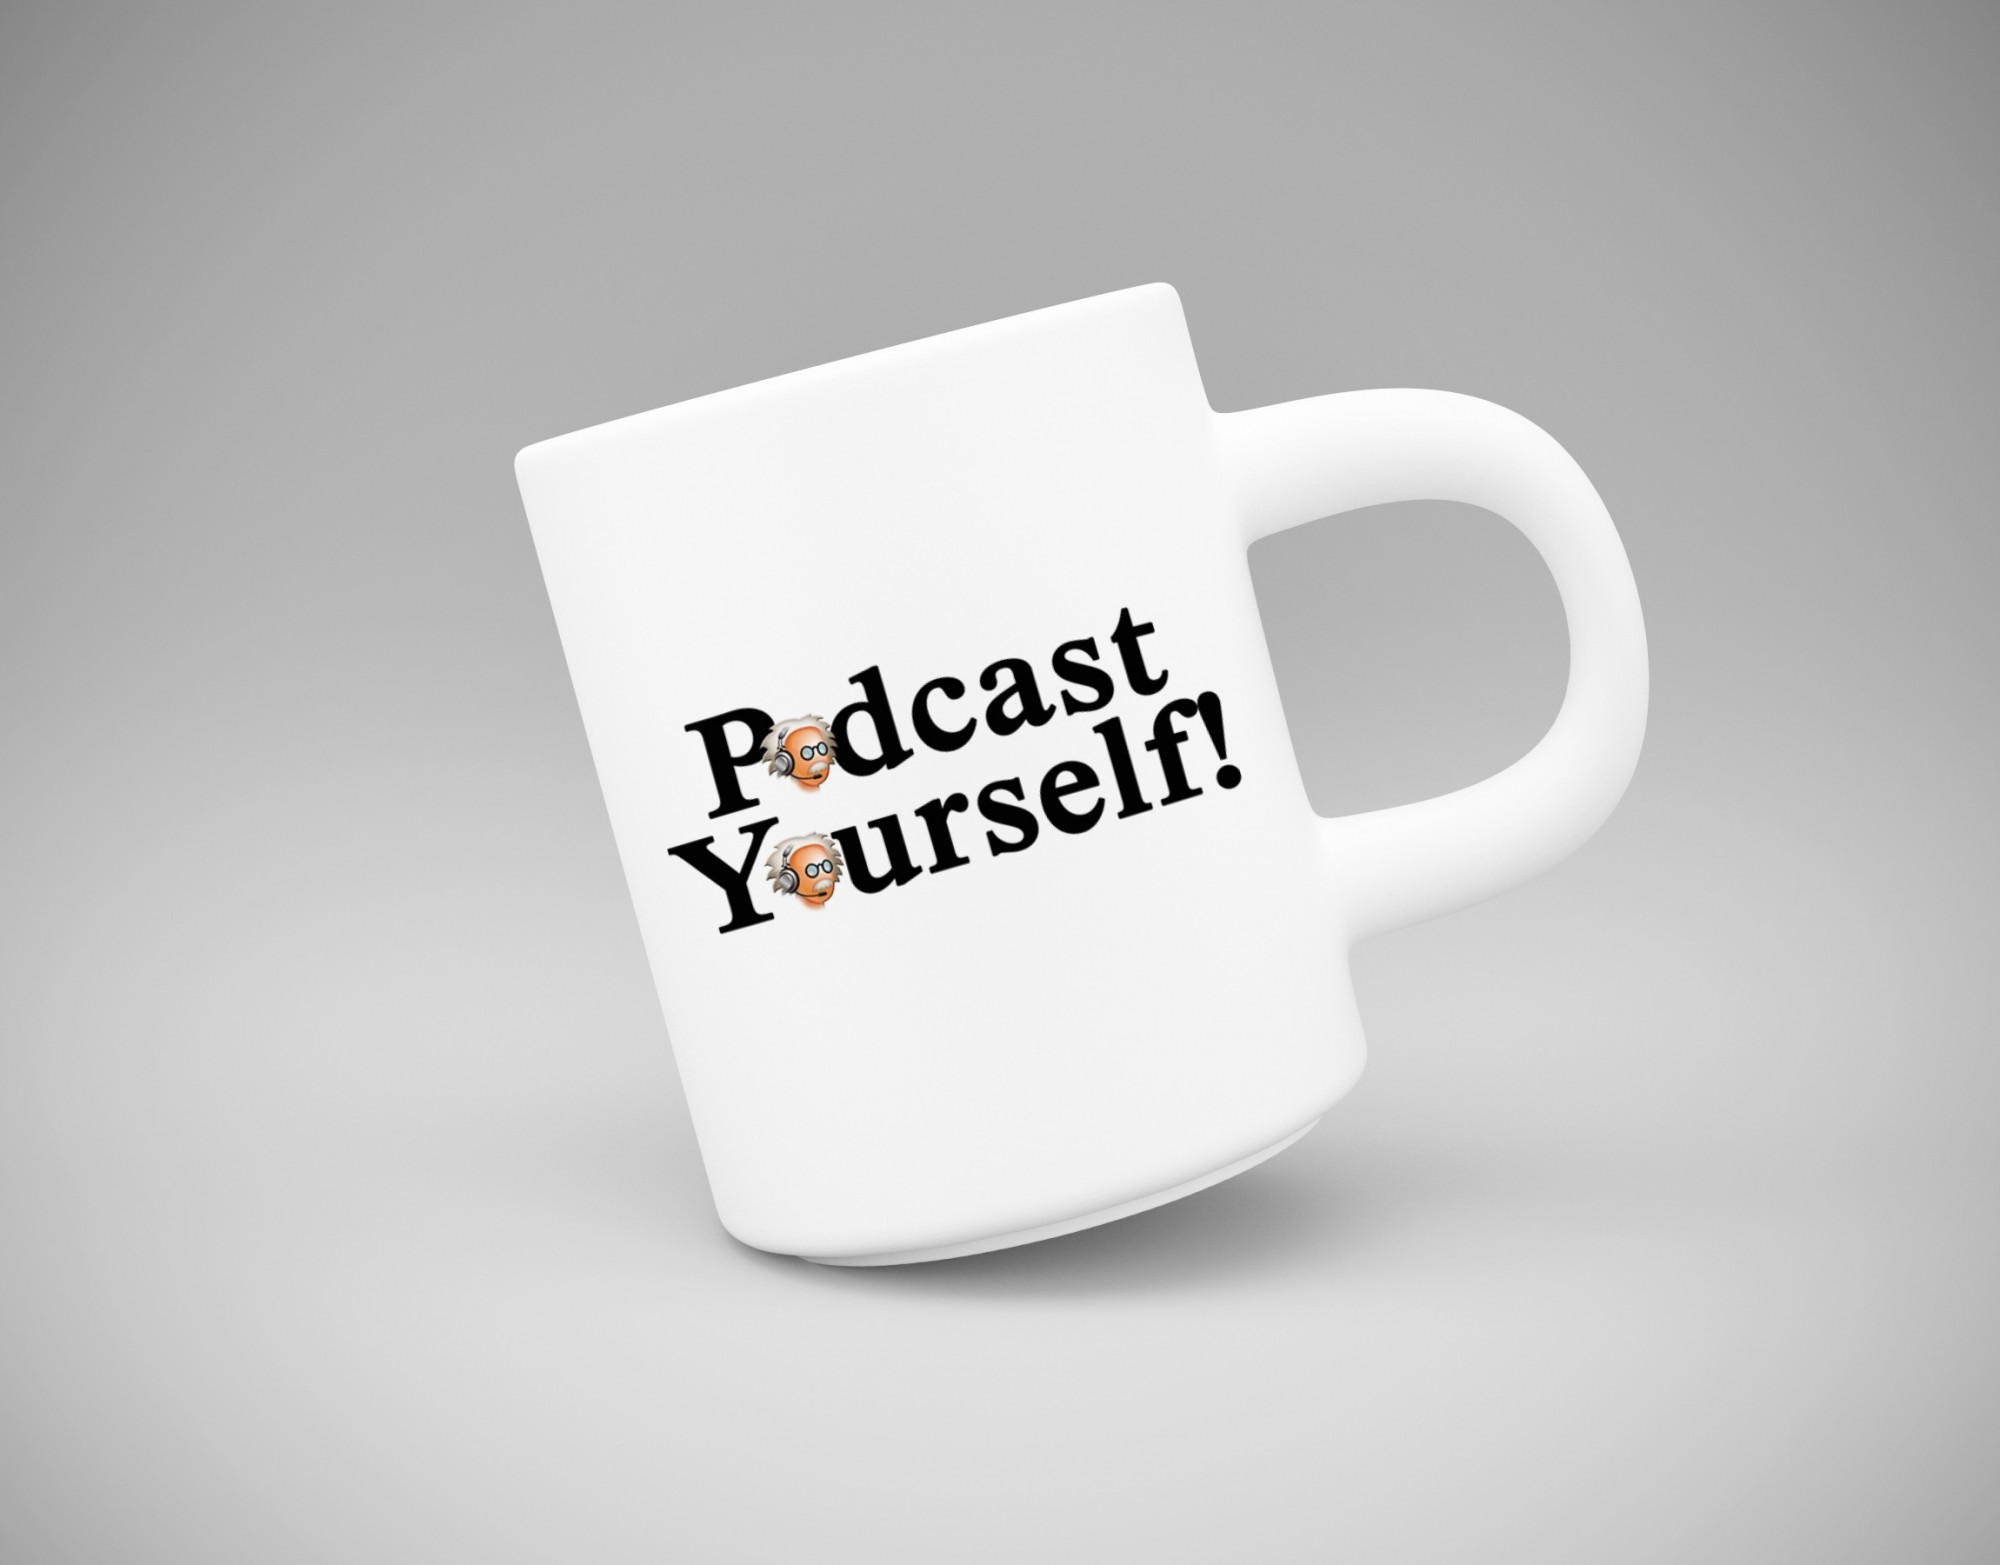 podcast yourself mug